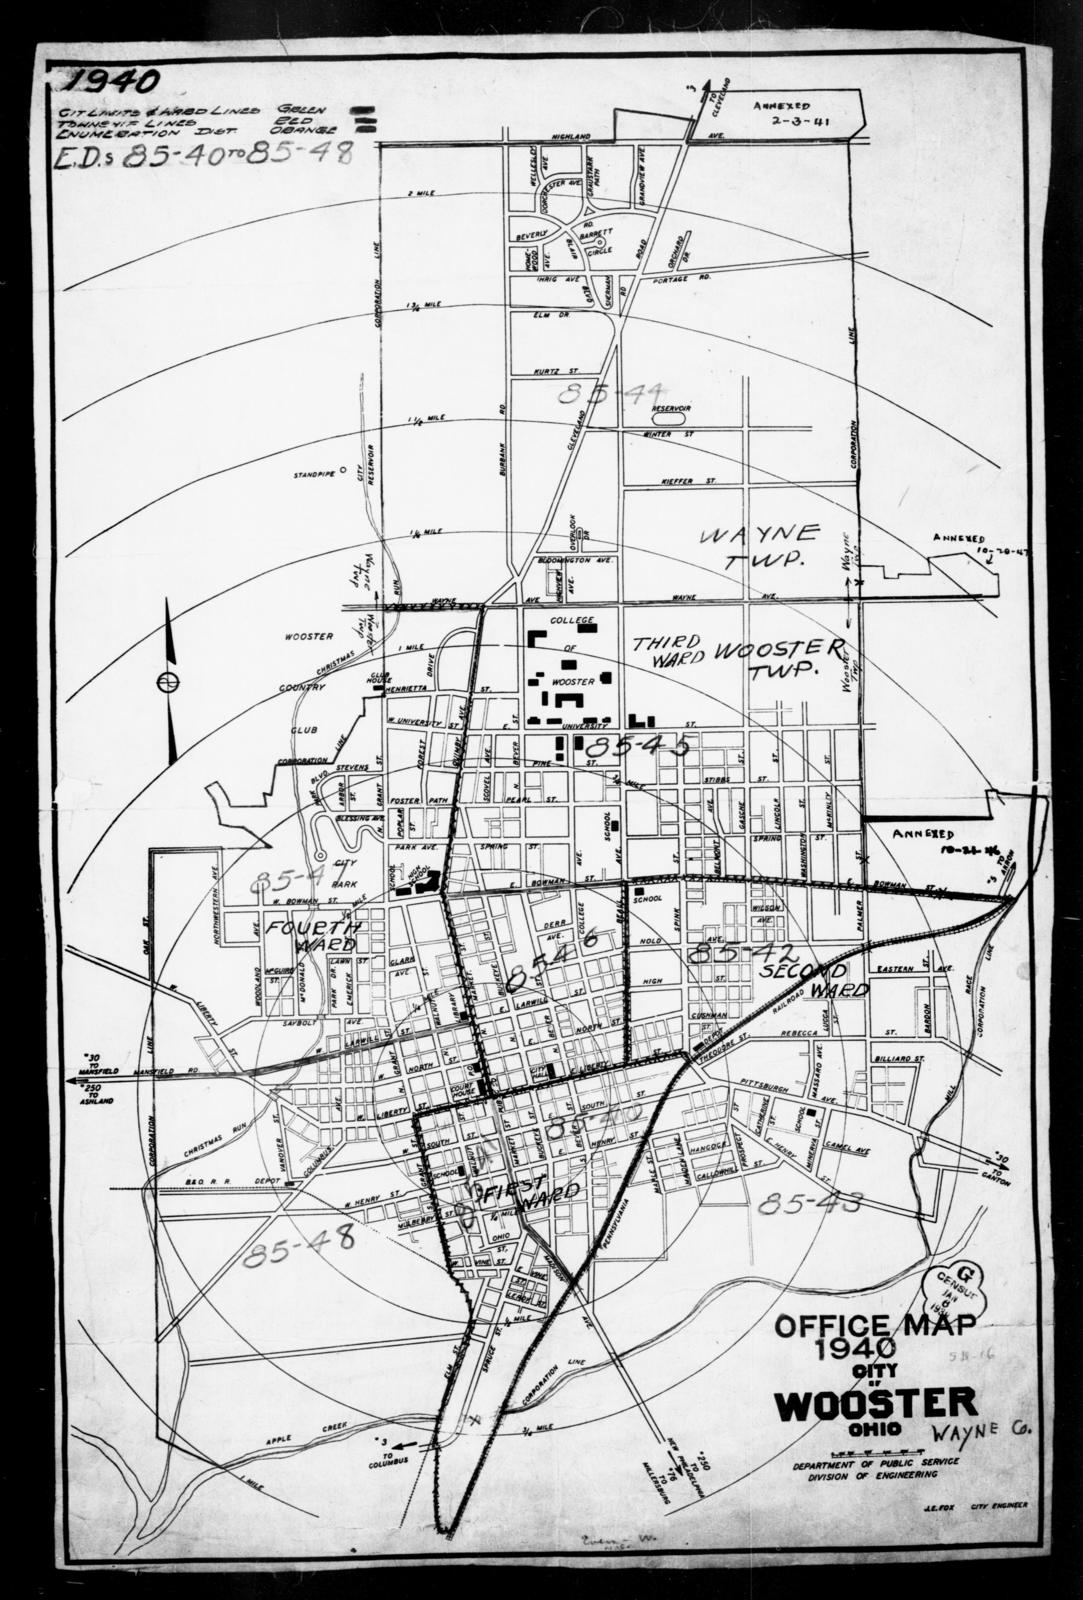 1940 Census Enumeration District Maps - Ohio - Wayne County ... on